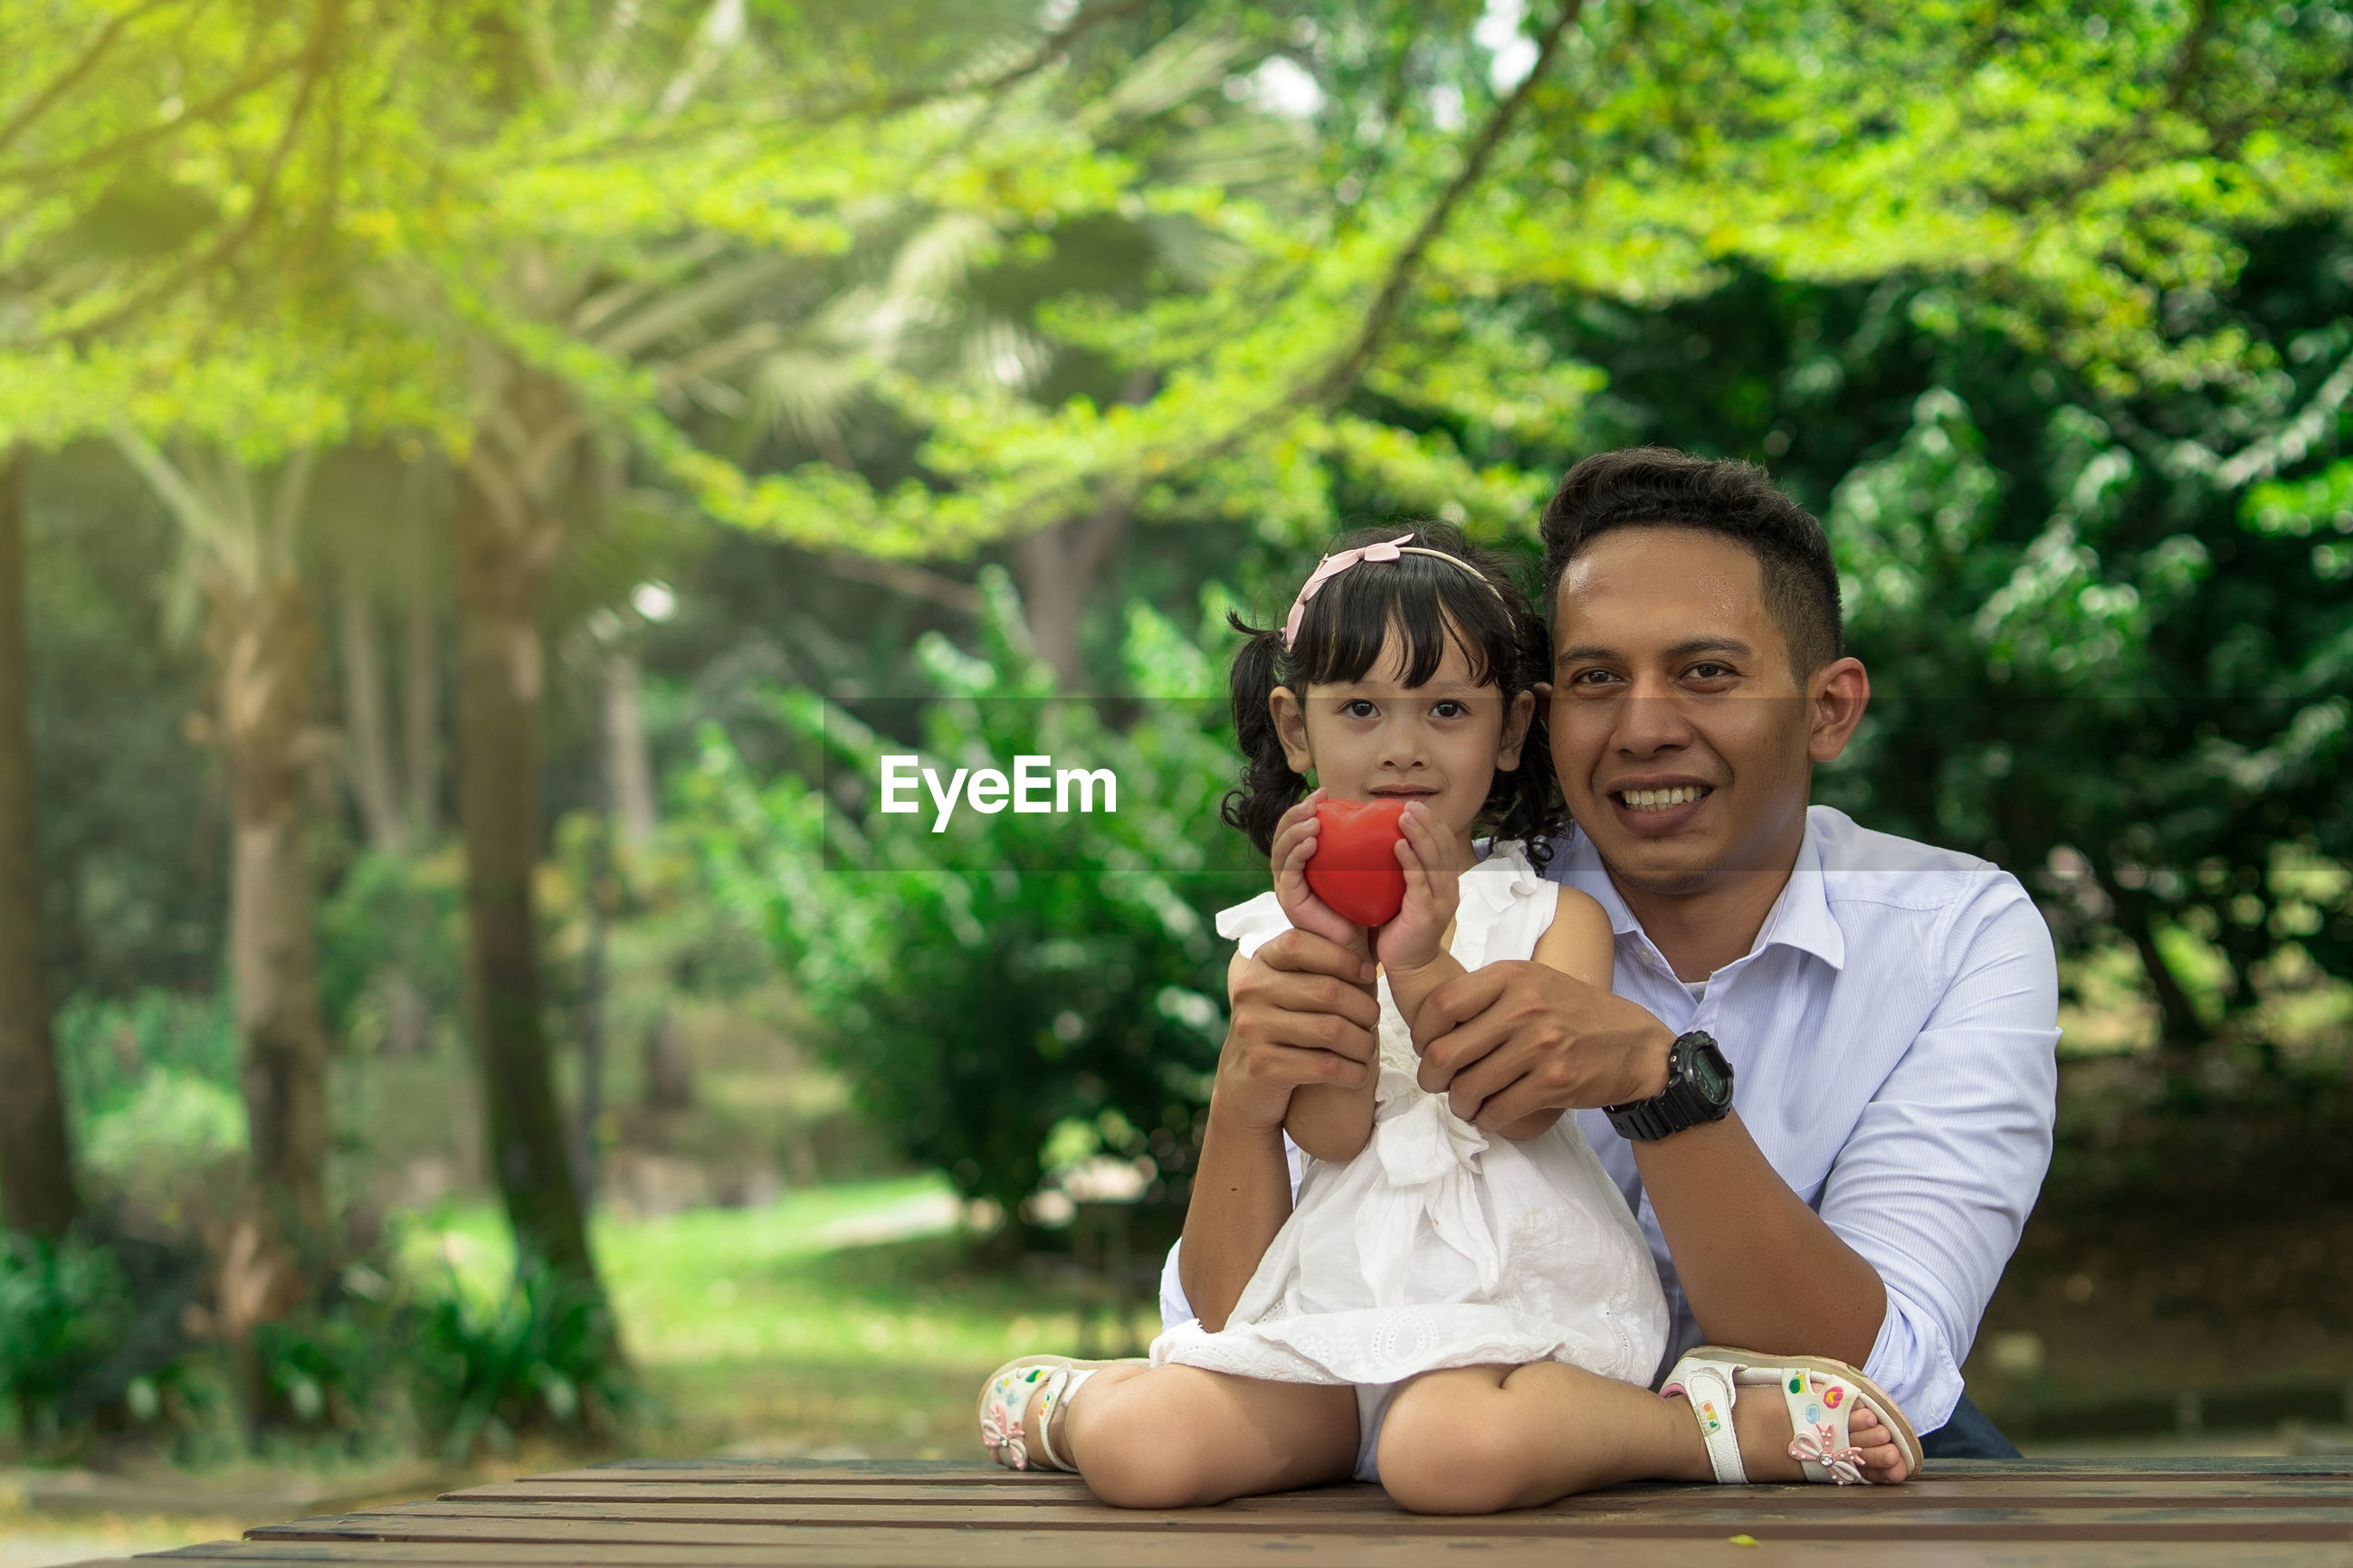 Portrait of father and daughter with heart shape against trees